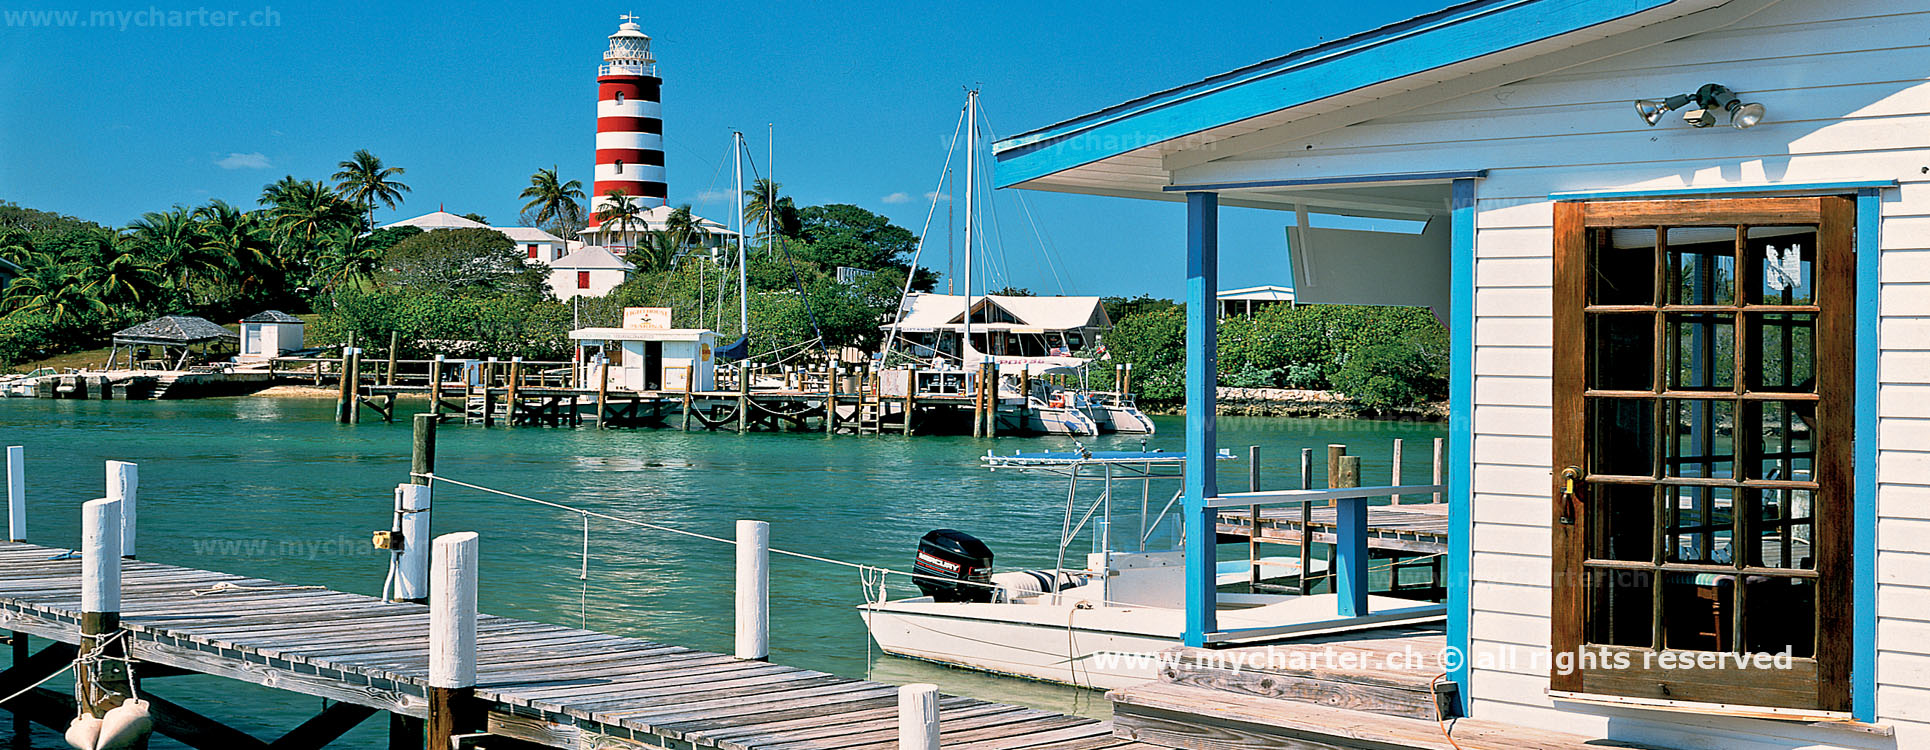 Bahamas - Hope Town of Elbow Cay -Abacos